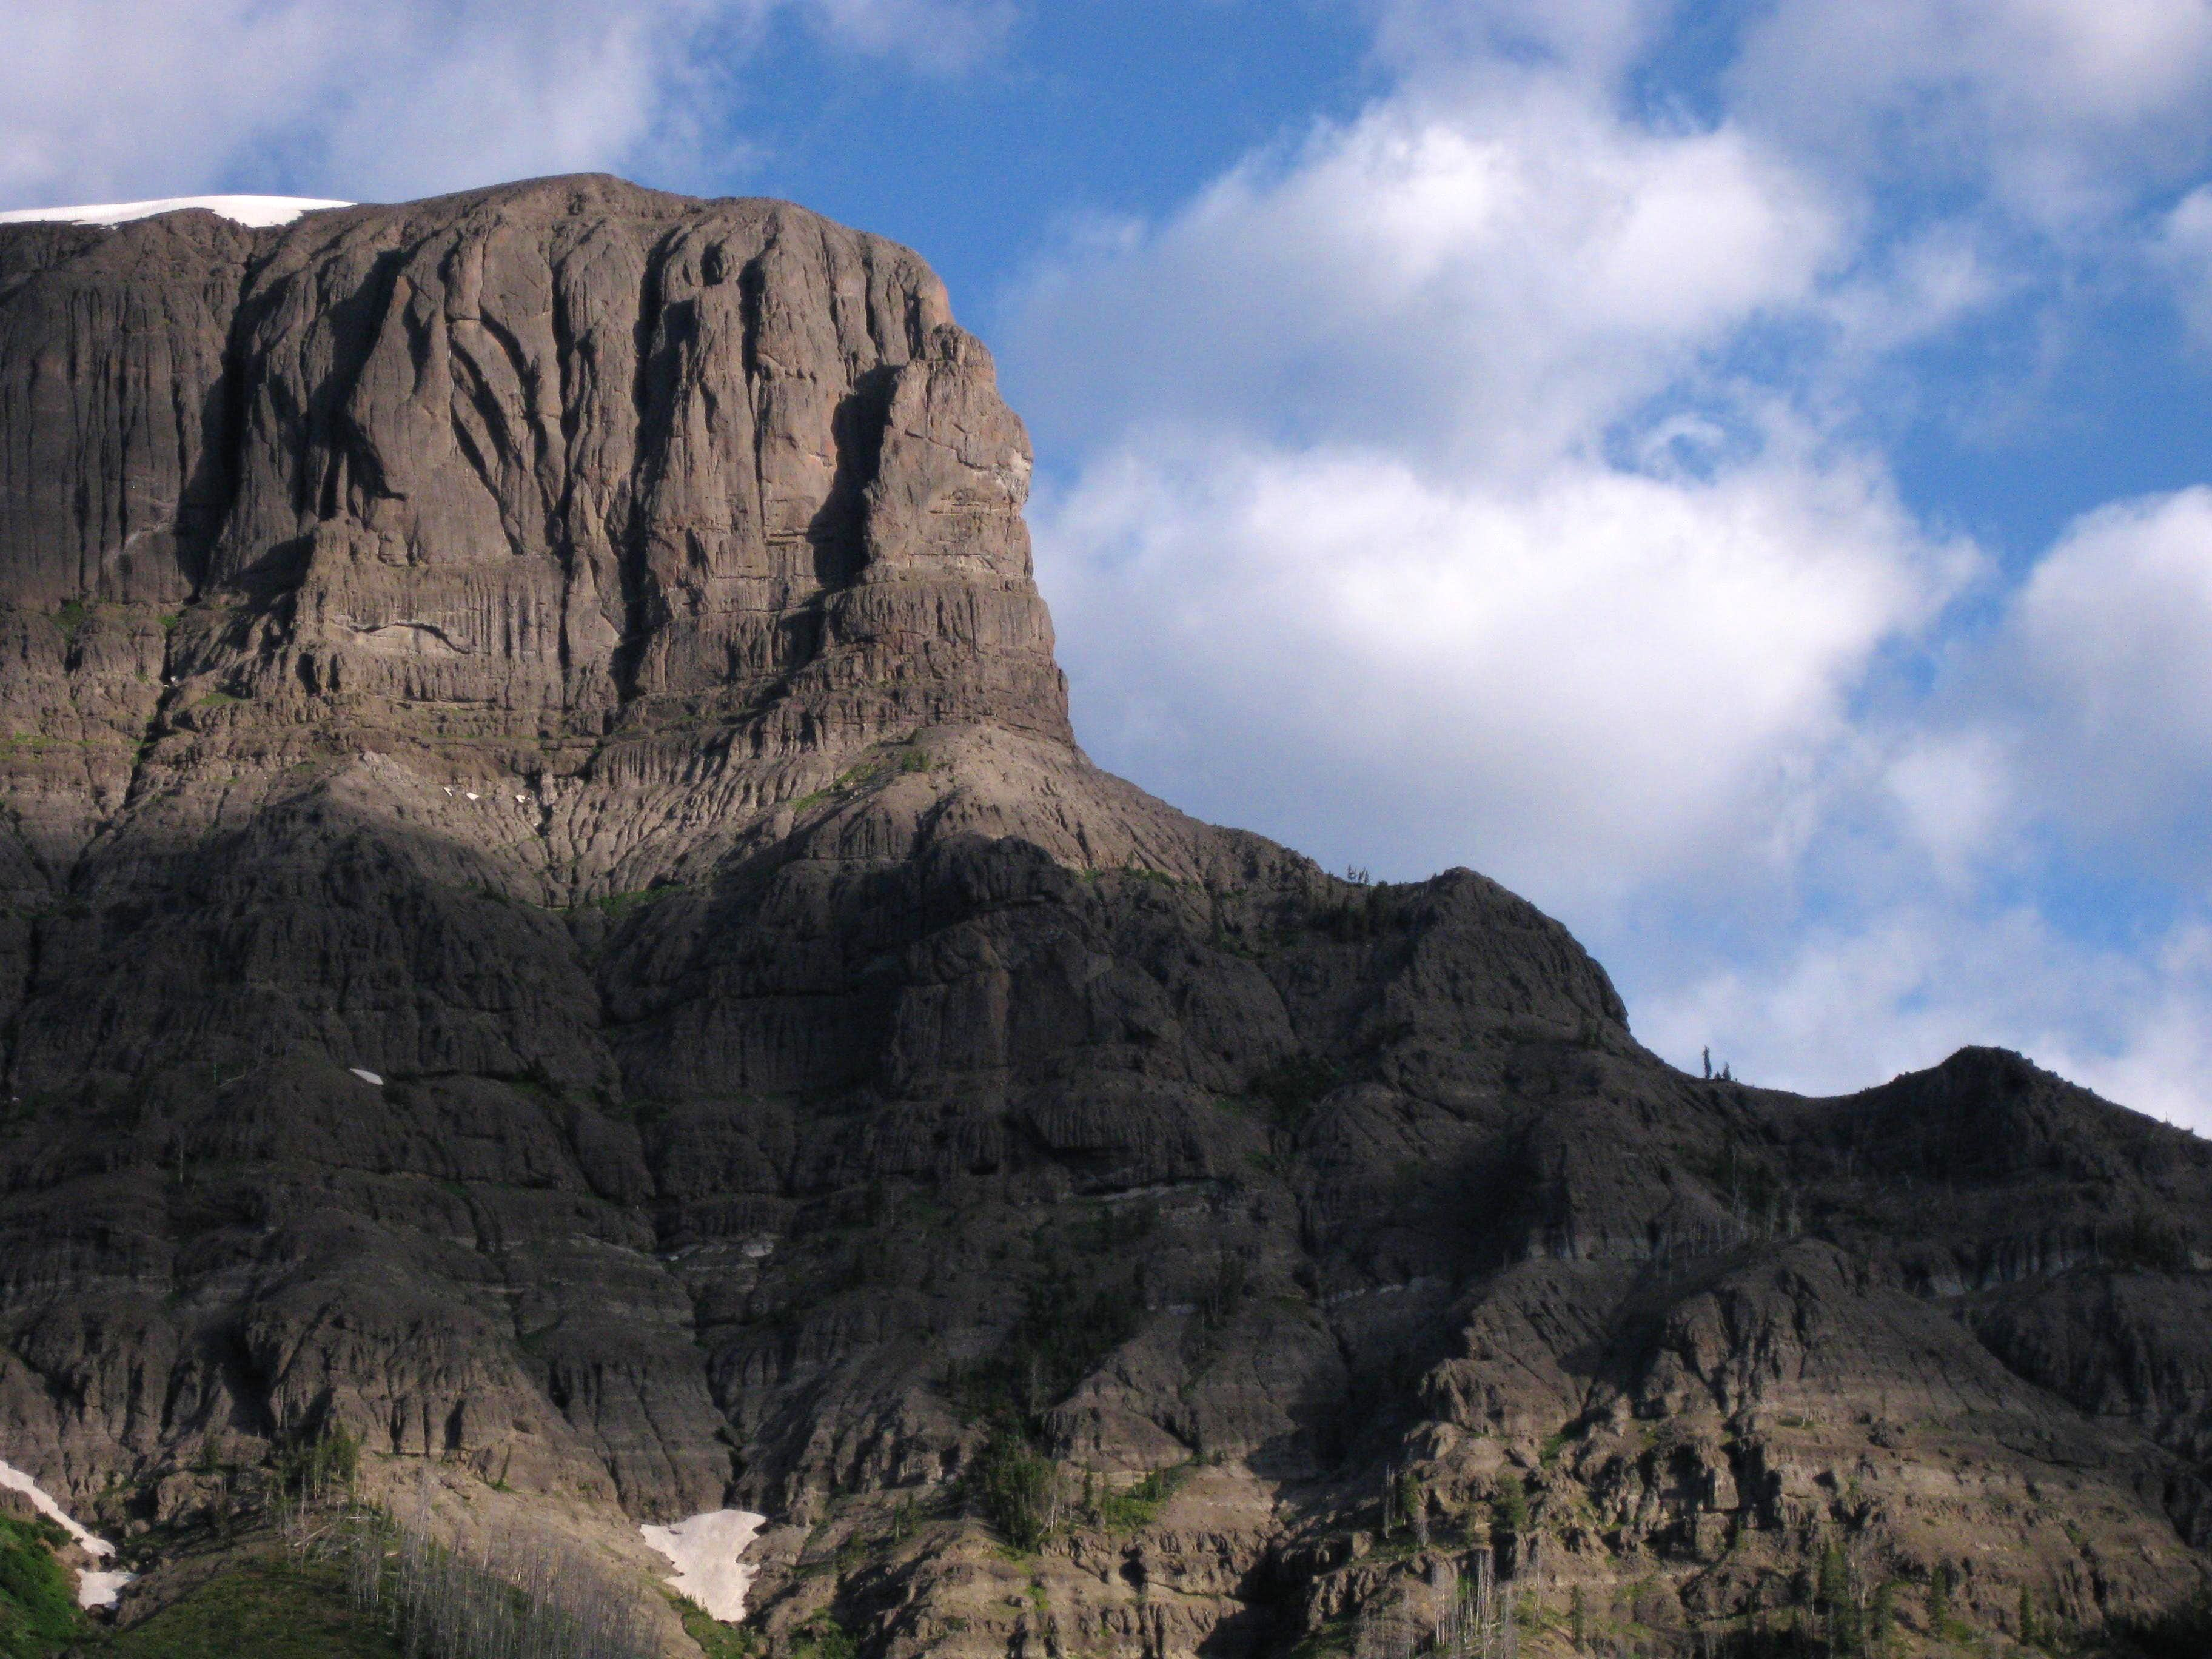 Cutoff Mountain